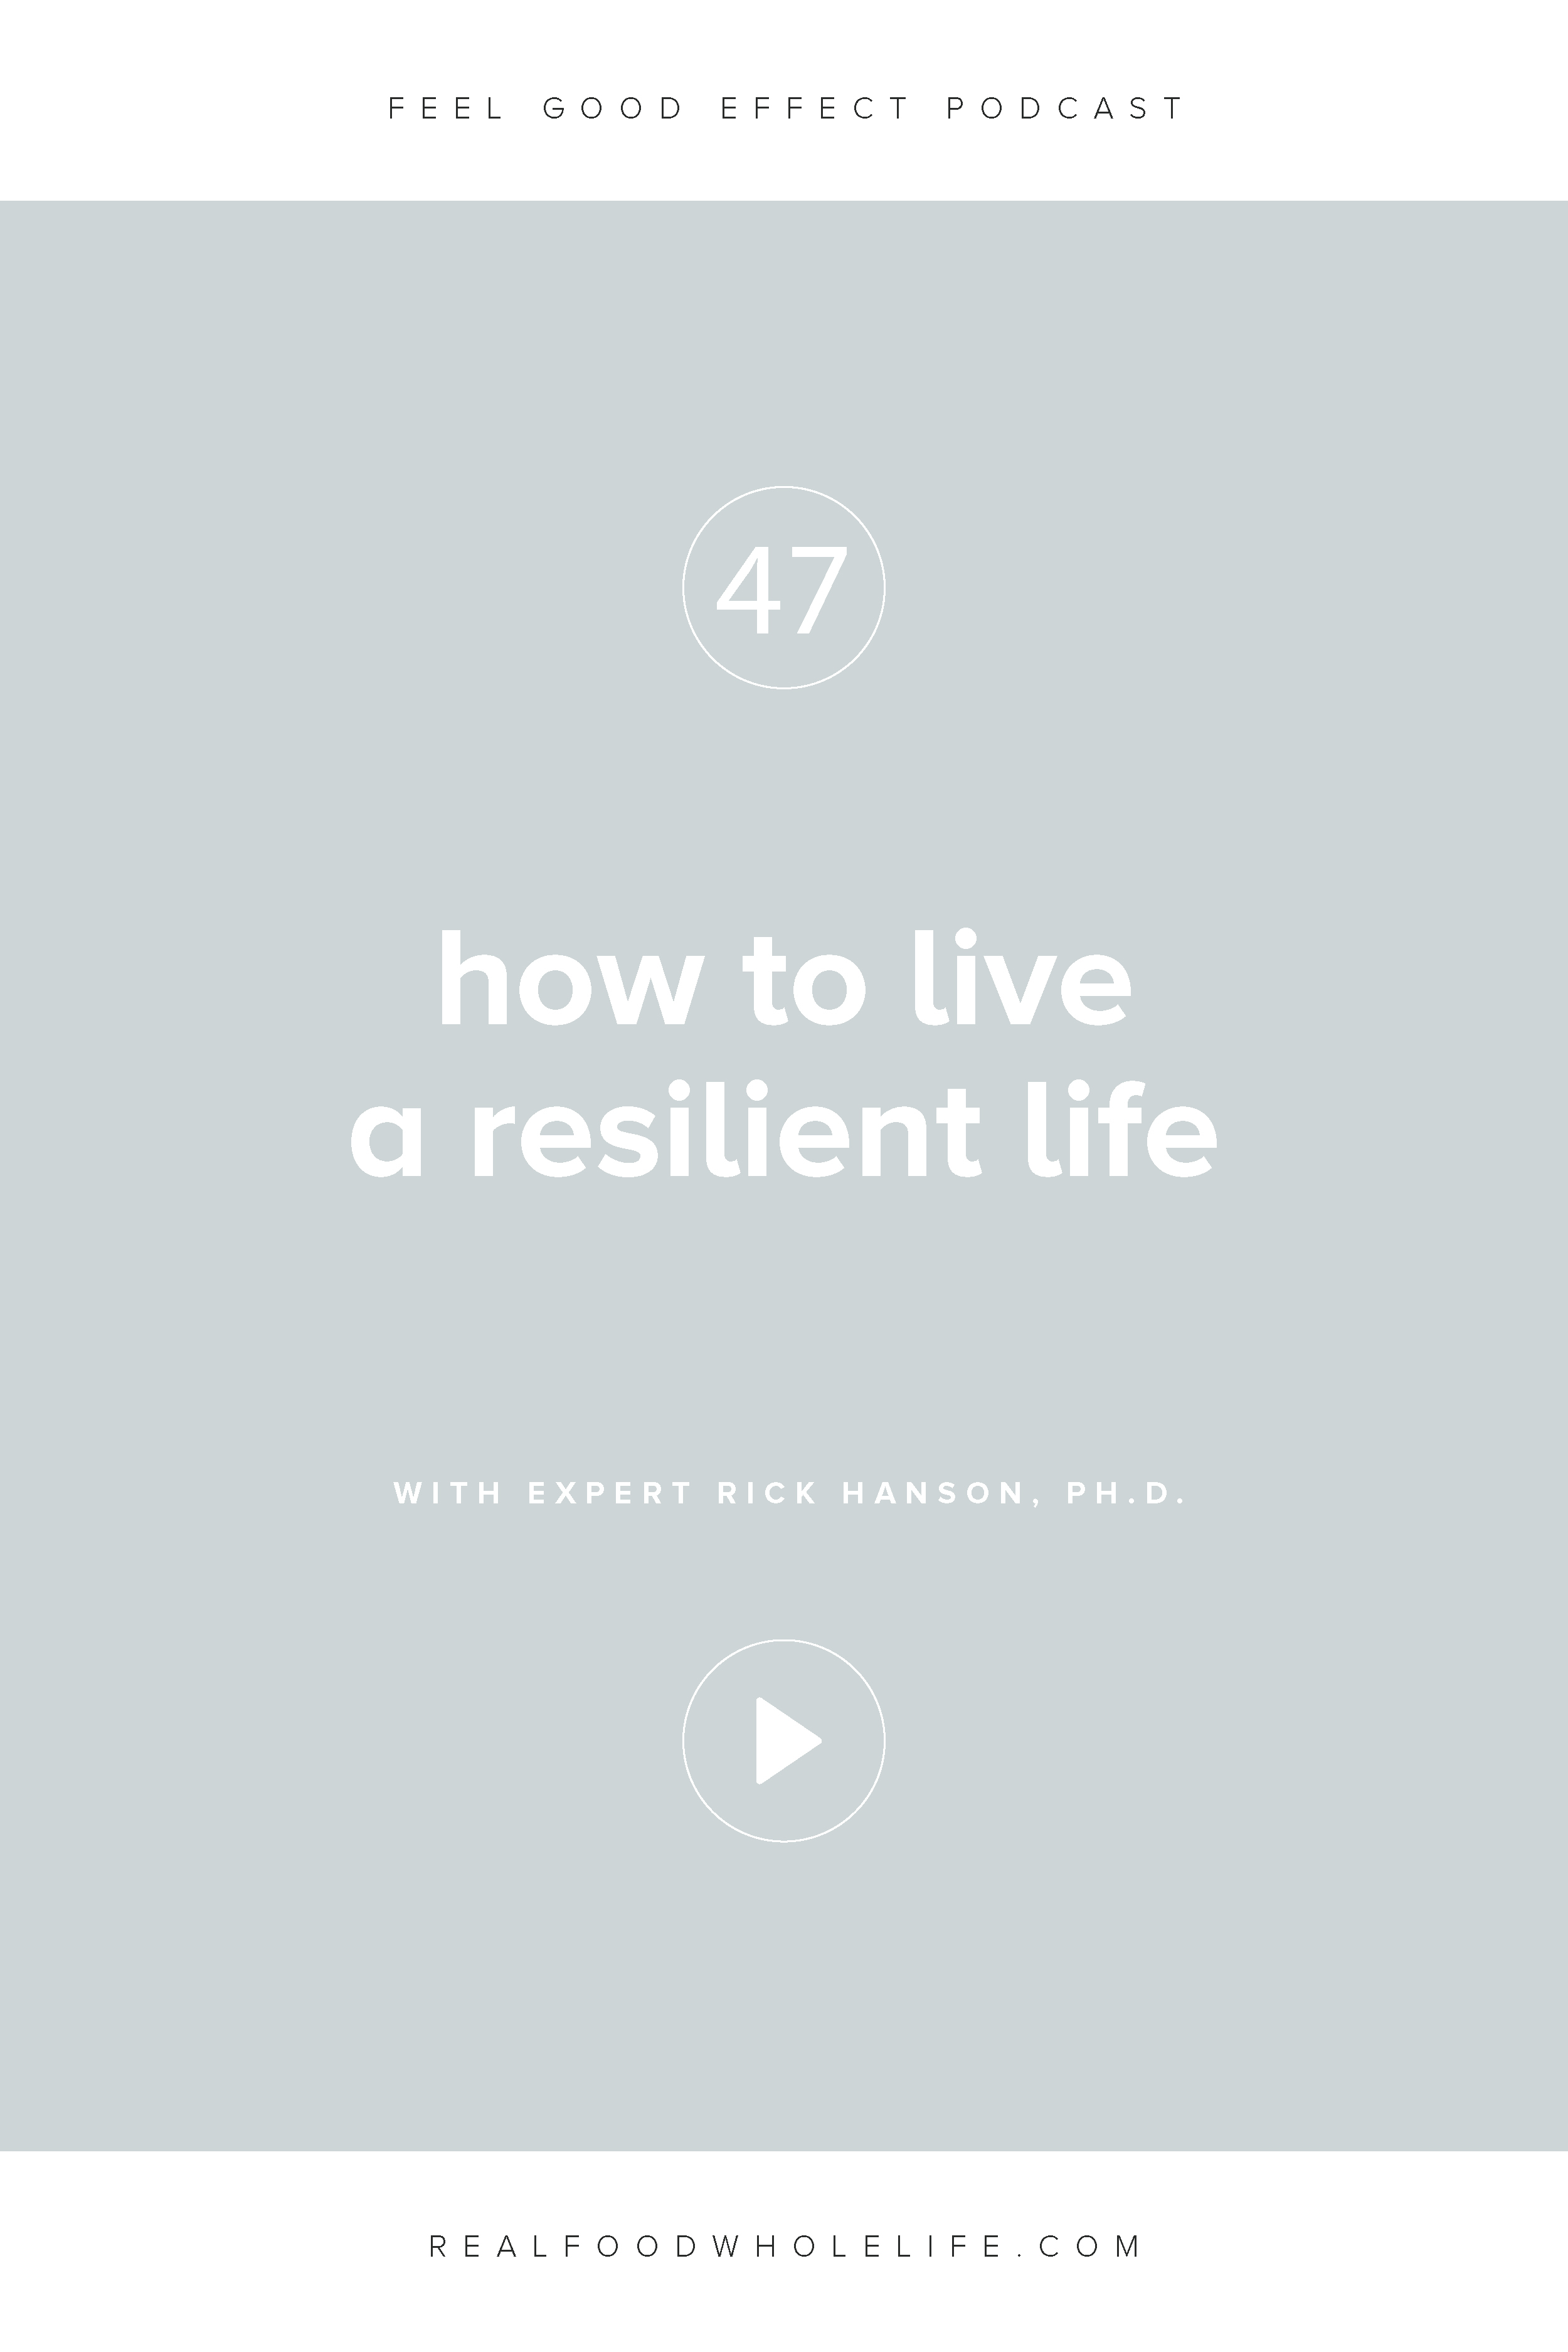 How to Live a Resilient Life with Dr. Rick Hanson